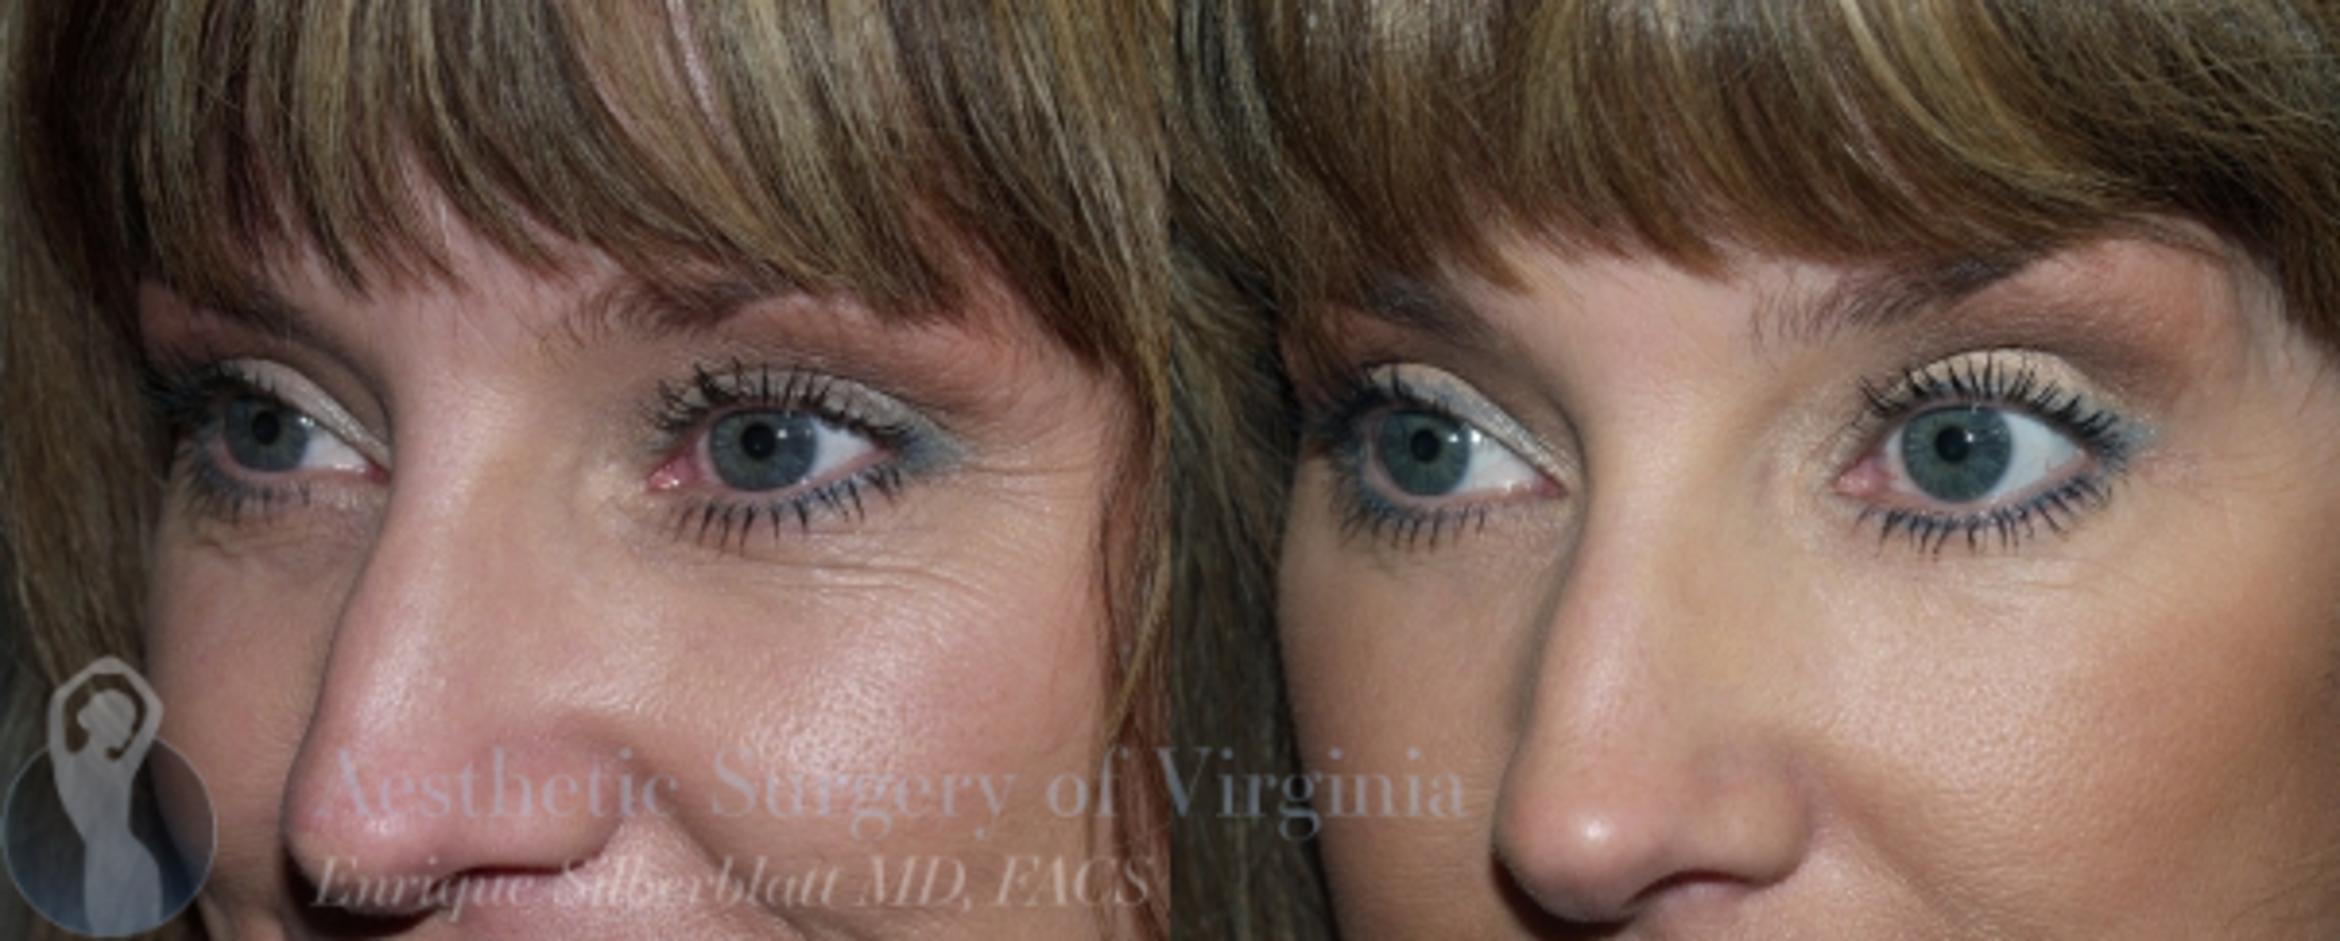 Eyelid Surgery Case 45 Before & After View #2 | Roanoke, VA | Aesthetic Surgery of Virginia: Enrique Silberblatt, MD